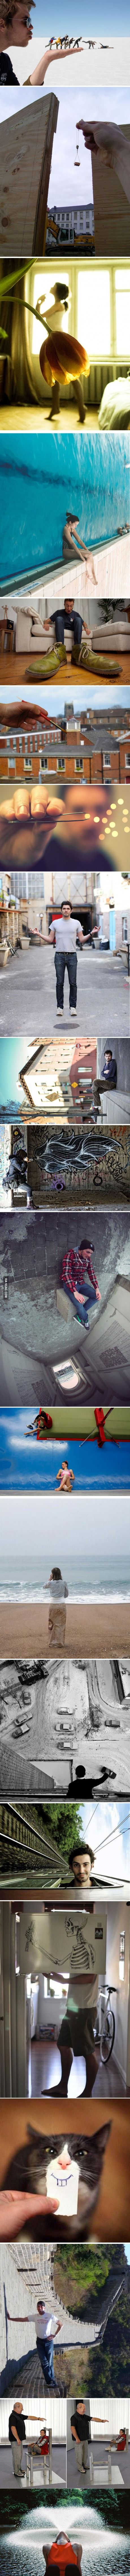 9GAG - Awesome perspective photography